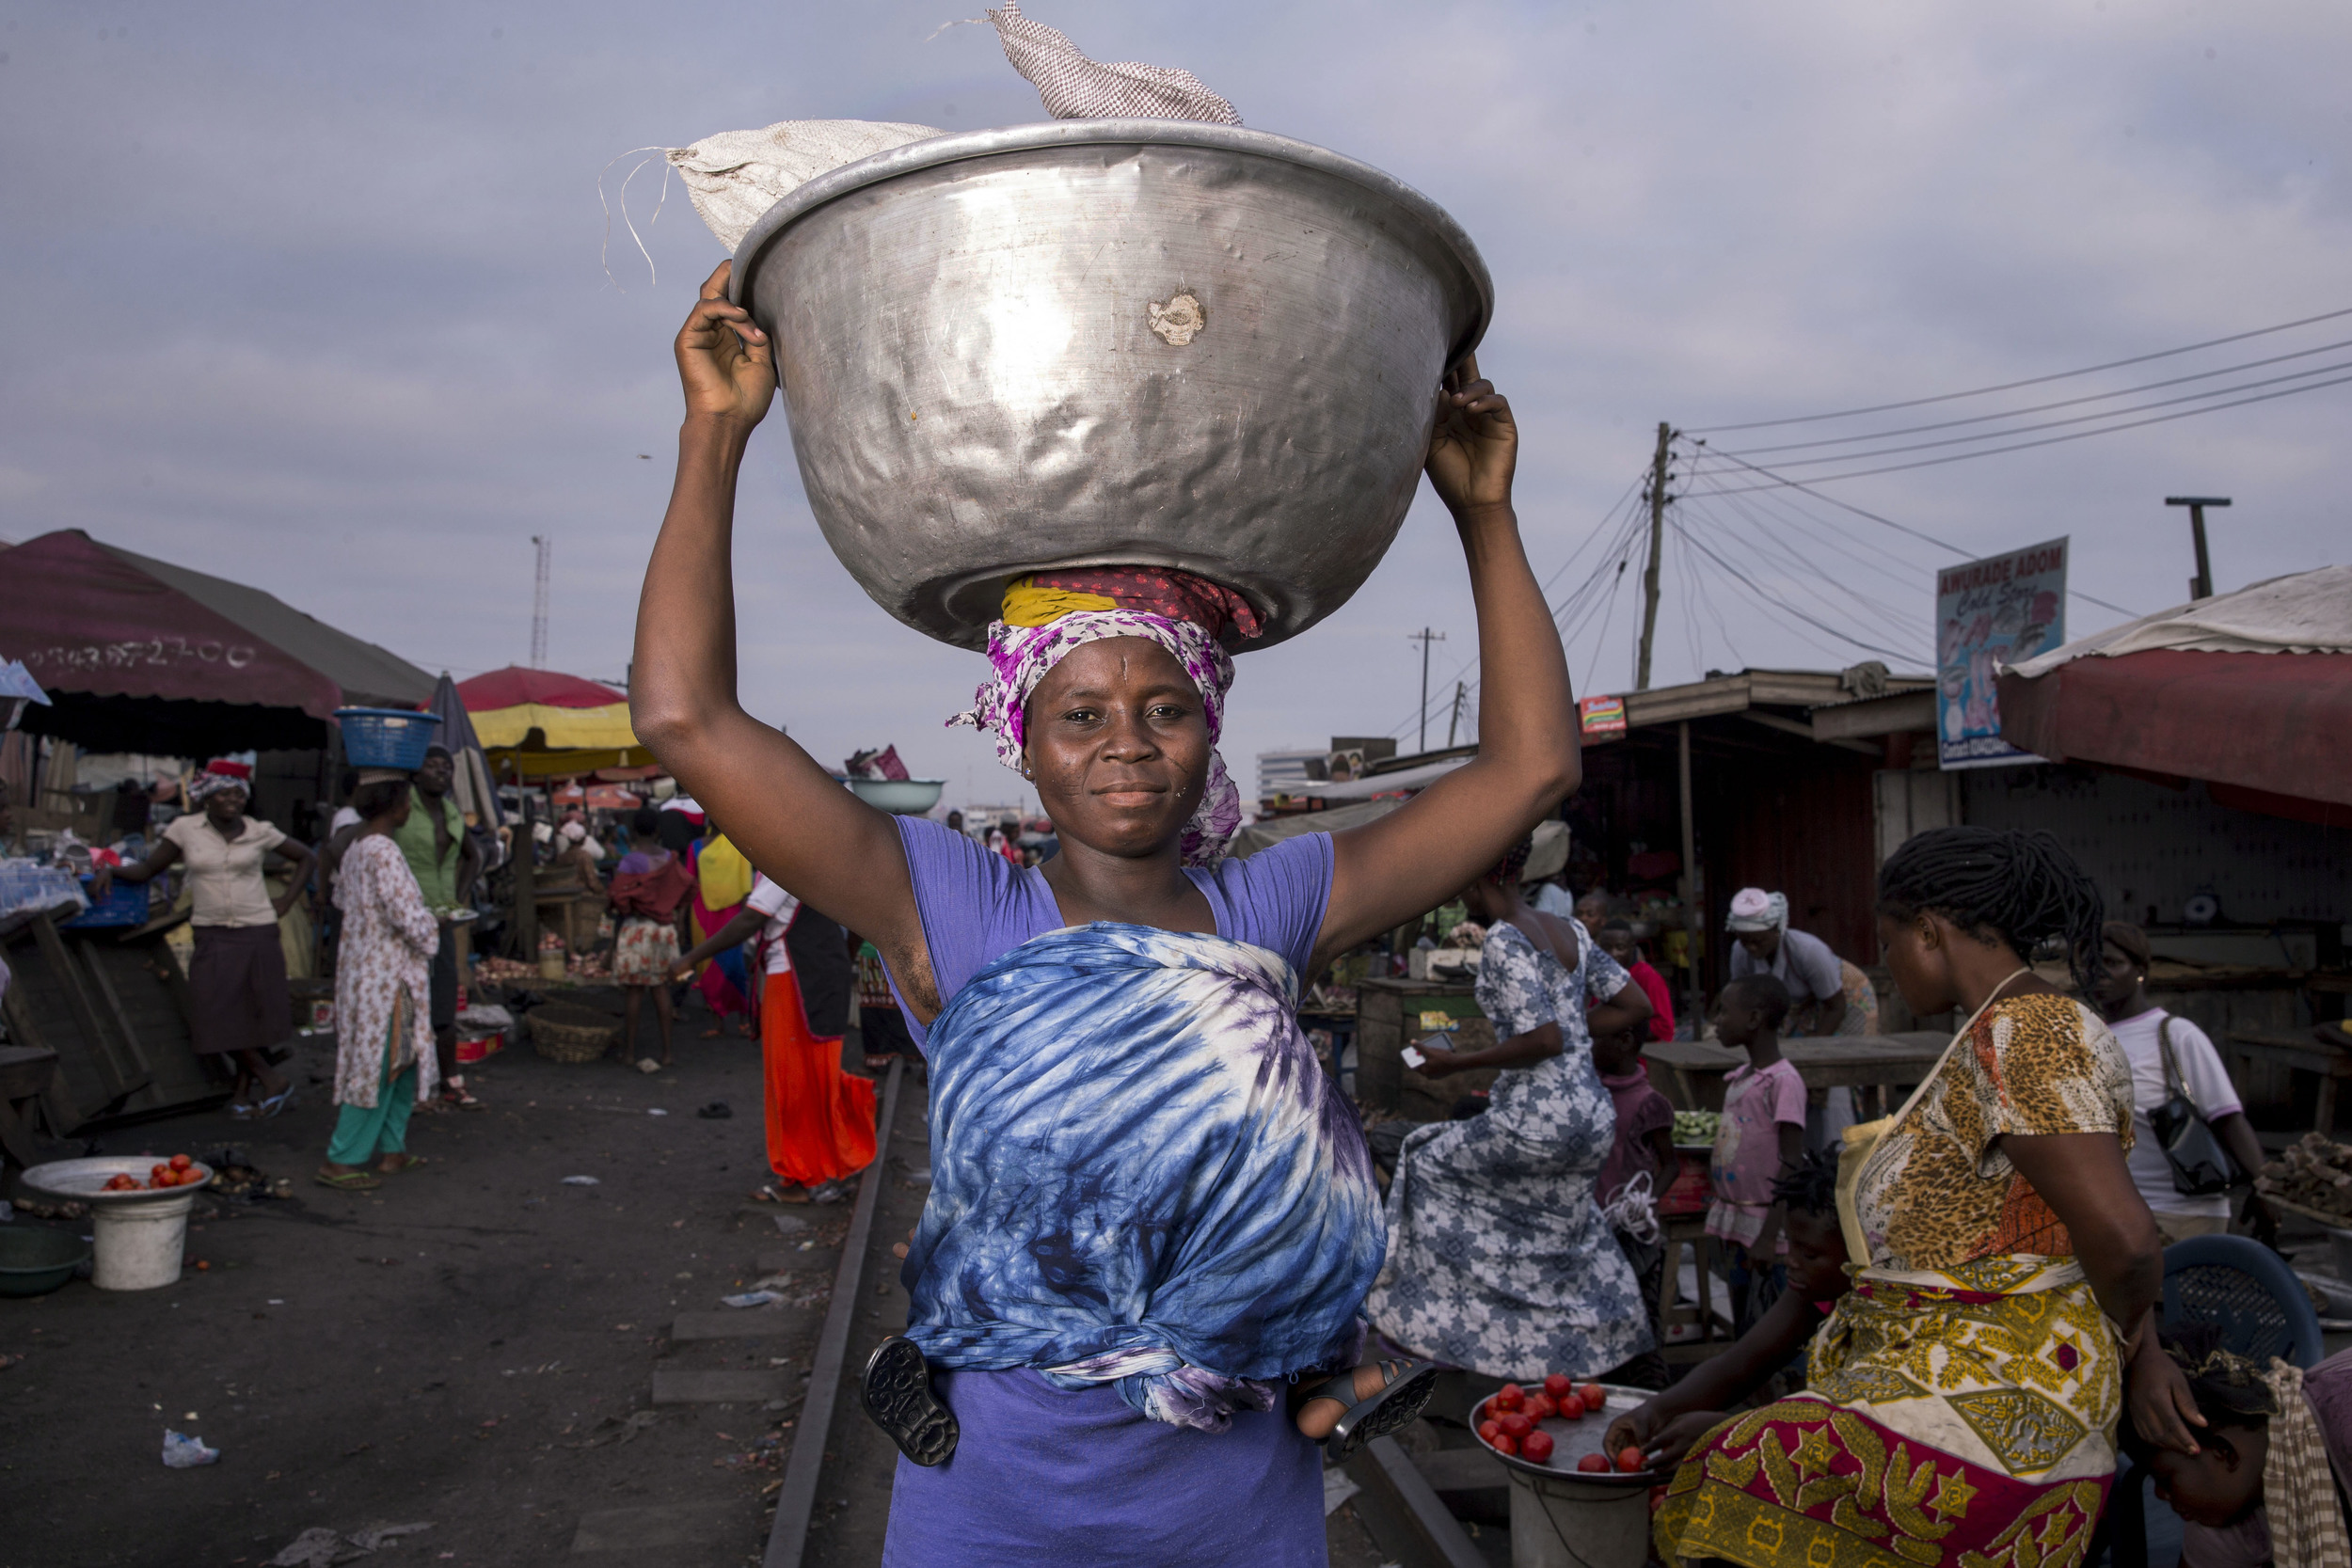 A head porter in Ghana. Photo: Creative Commons Attribution-NonCommercial 4.0 International (CC BY-NC 4.0)